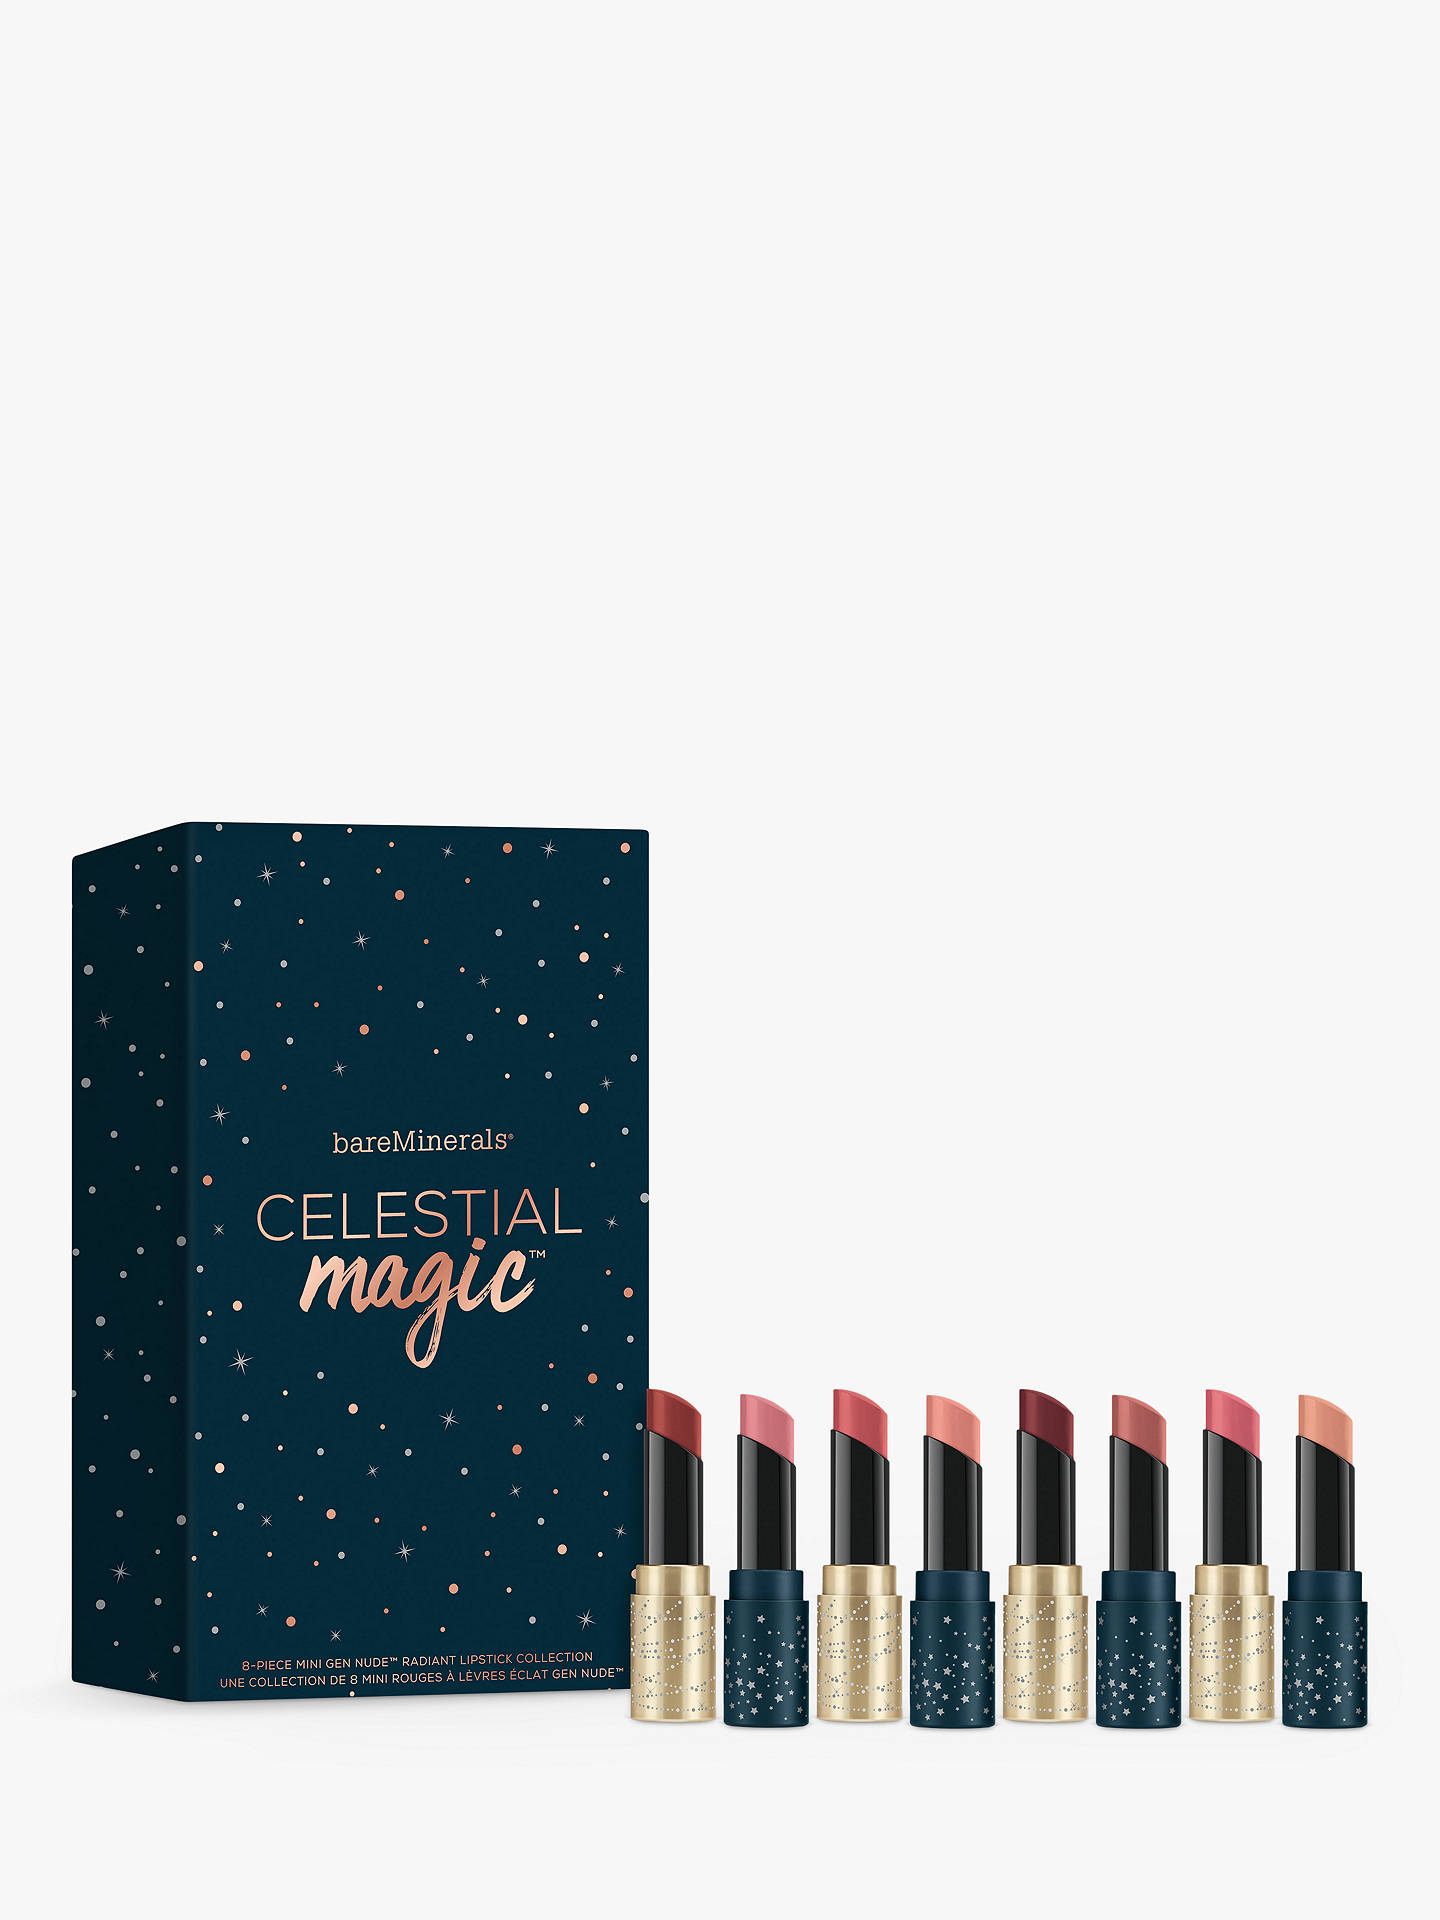 BuybareMinerals Celestial Magic Lip Collection Makeup Gift Set Online at johnlewis.com